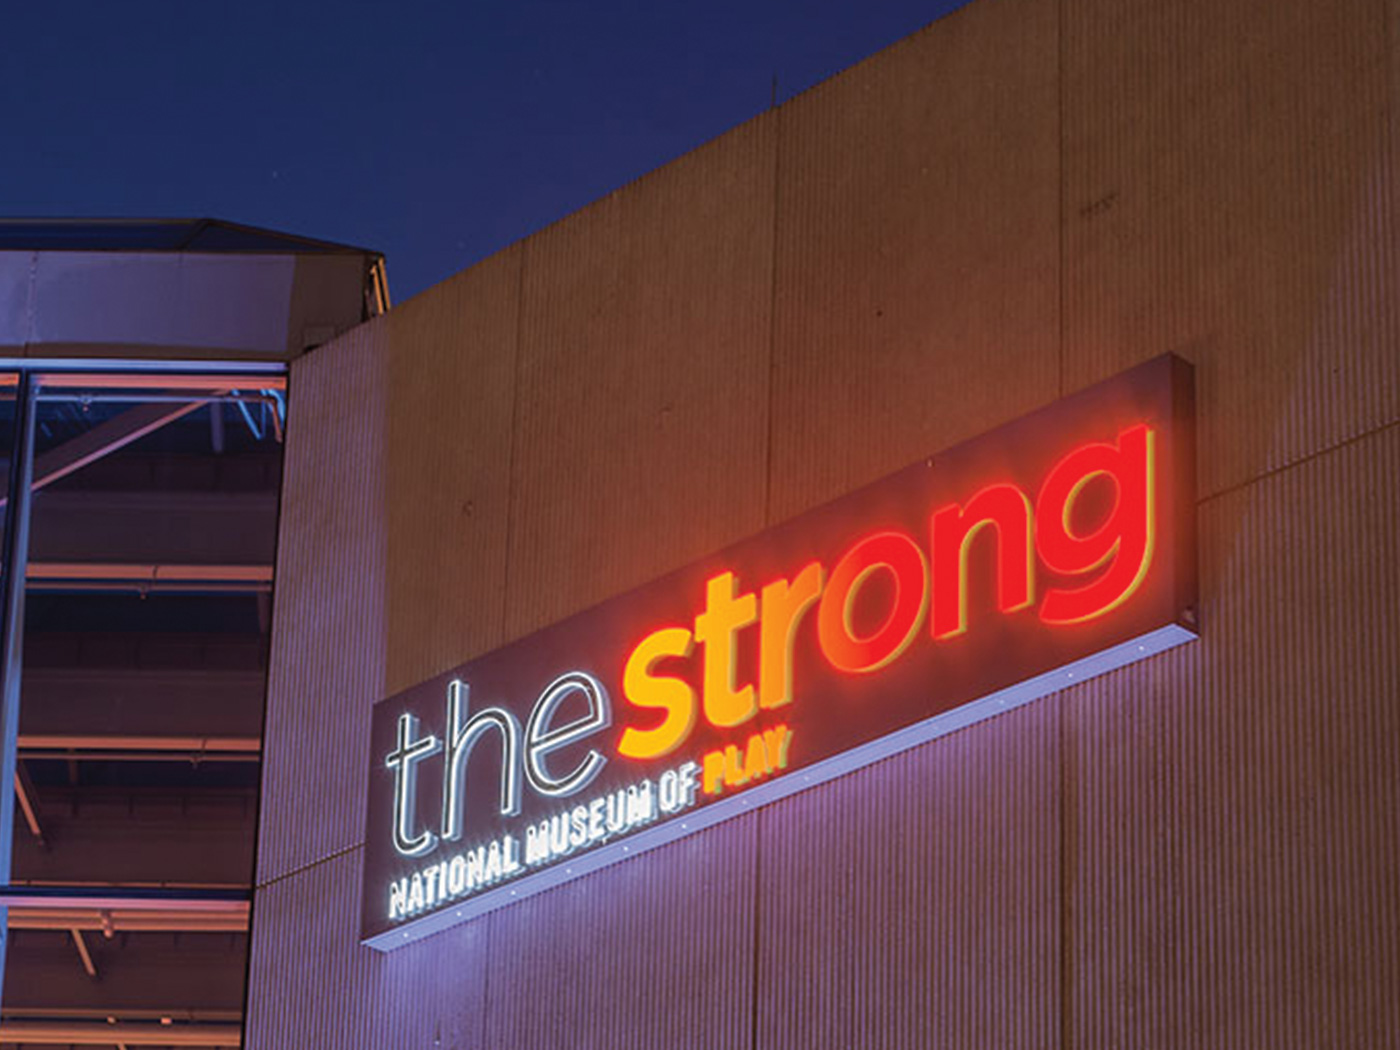 The Strong Illuminated Sign